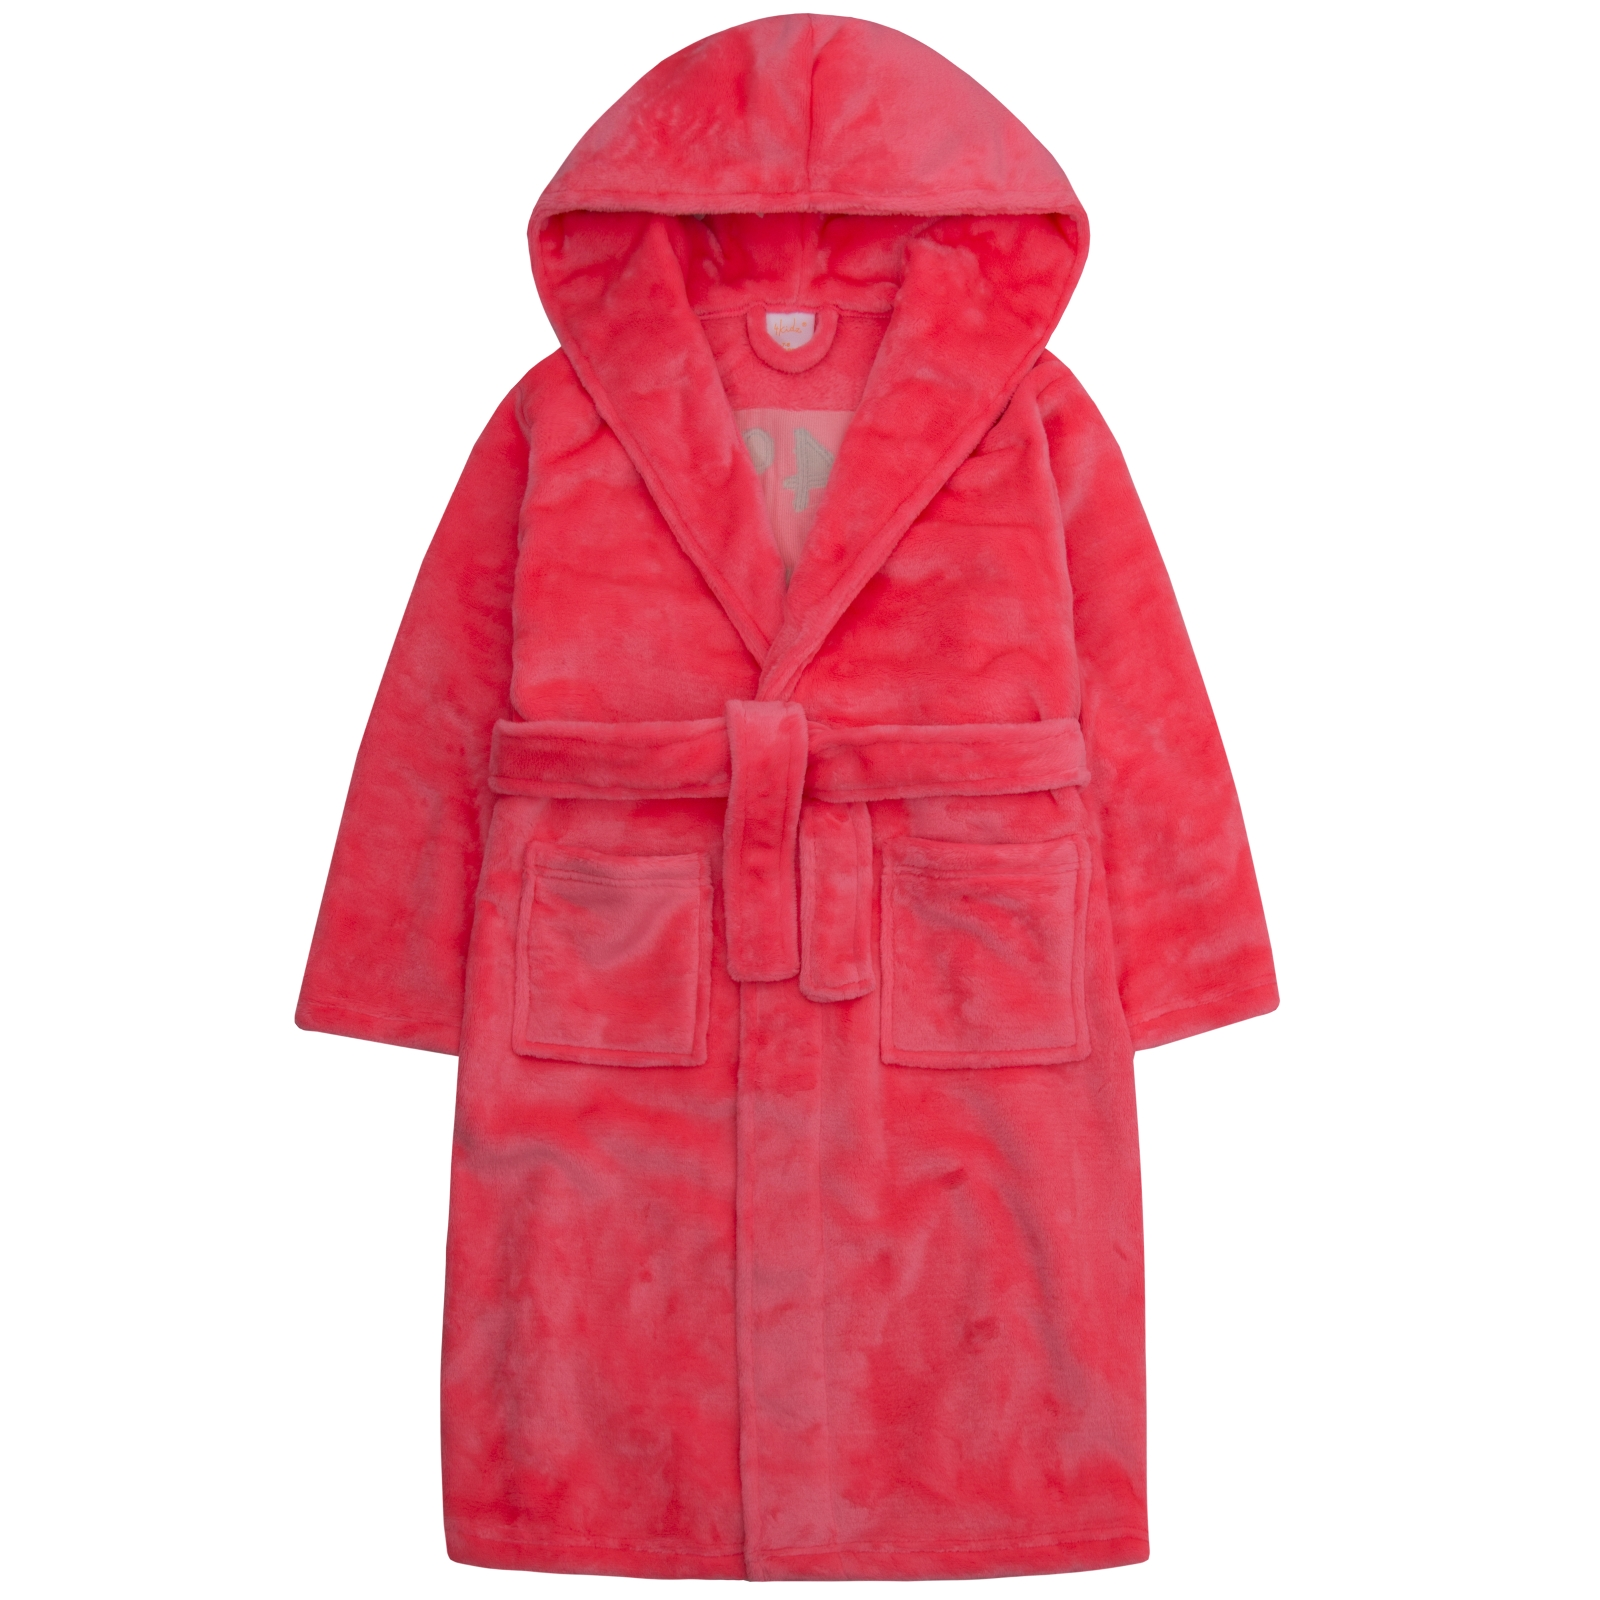 Riverdale Girls Dressing Gown Fluffy Fleece Hooded Robe for Teenagers Age 9-15